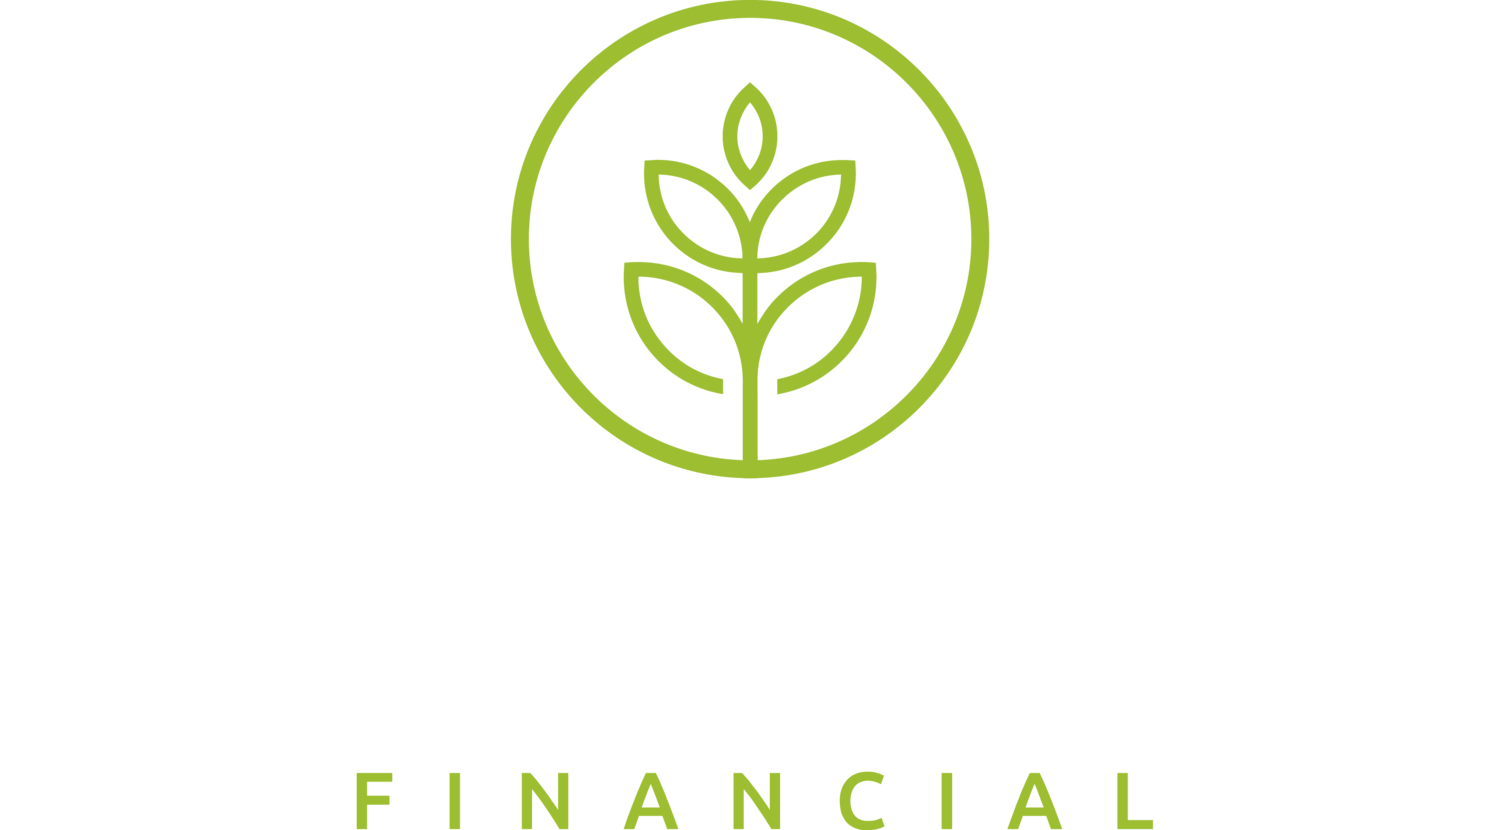 Three Nine Financial | Biblical Investing | Christian Investing